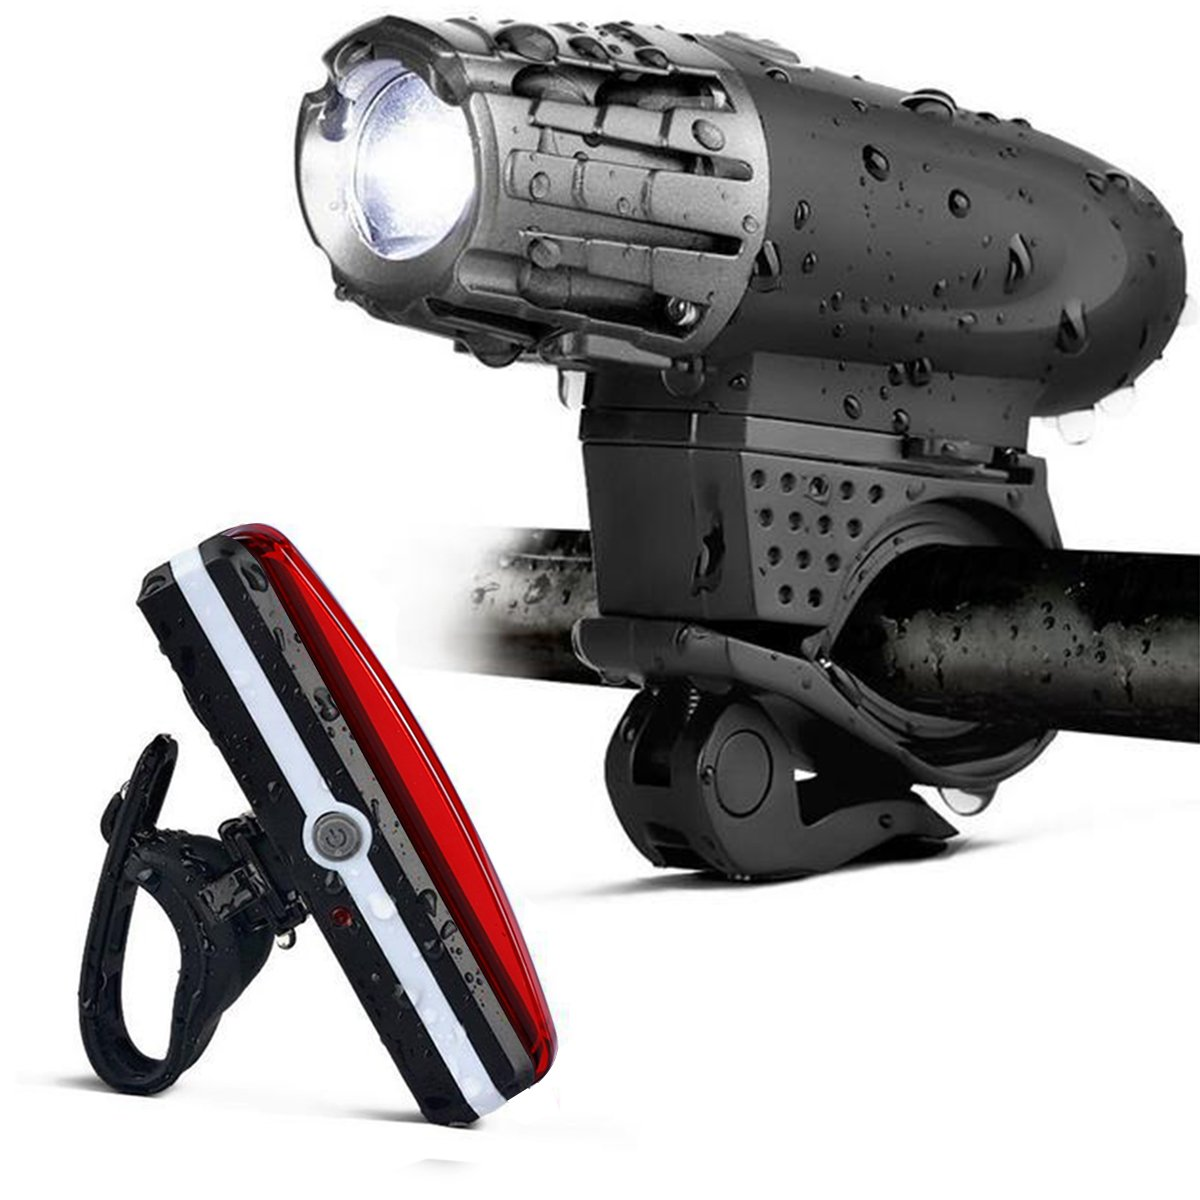 USB Rechargeable LED Bike Light Set, LASUAVY Waterproof Super Bright LED Bicycle Lights including 300 Lumens Front Light and 100 Lumens Tail Light - Easy Installation Mountain Bike Light Safety for Night Riders Bicycle Lights bike light F+T